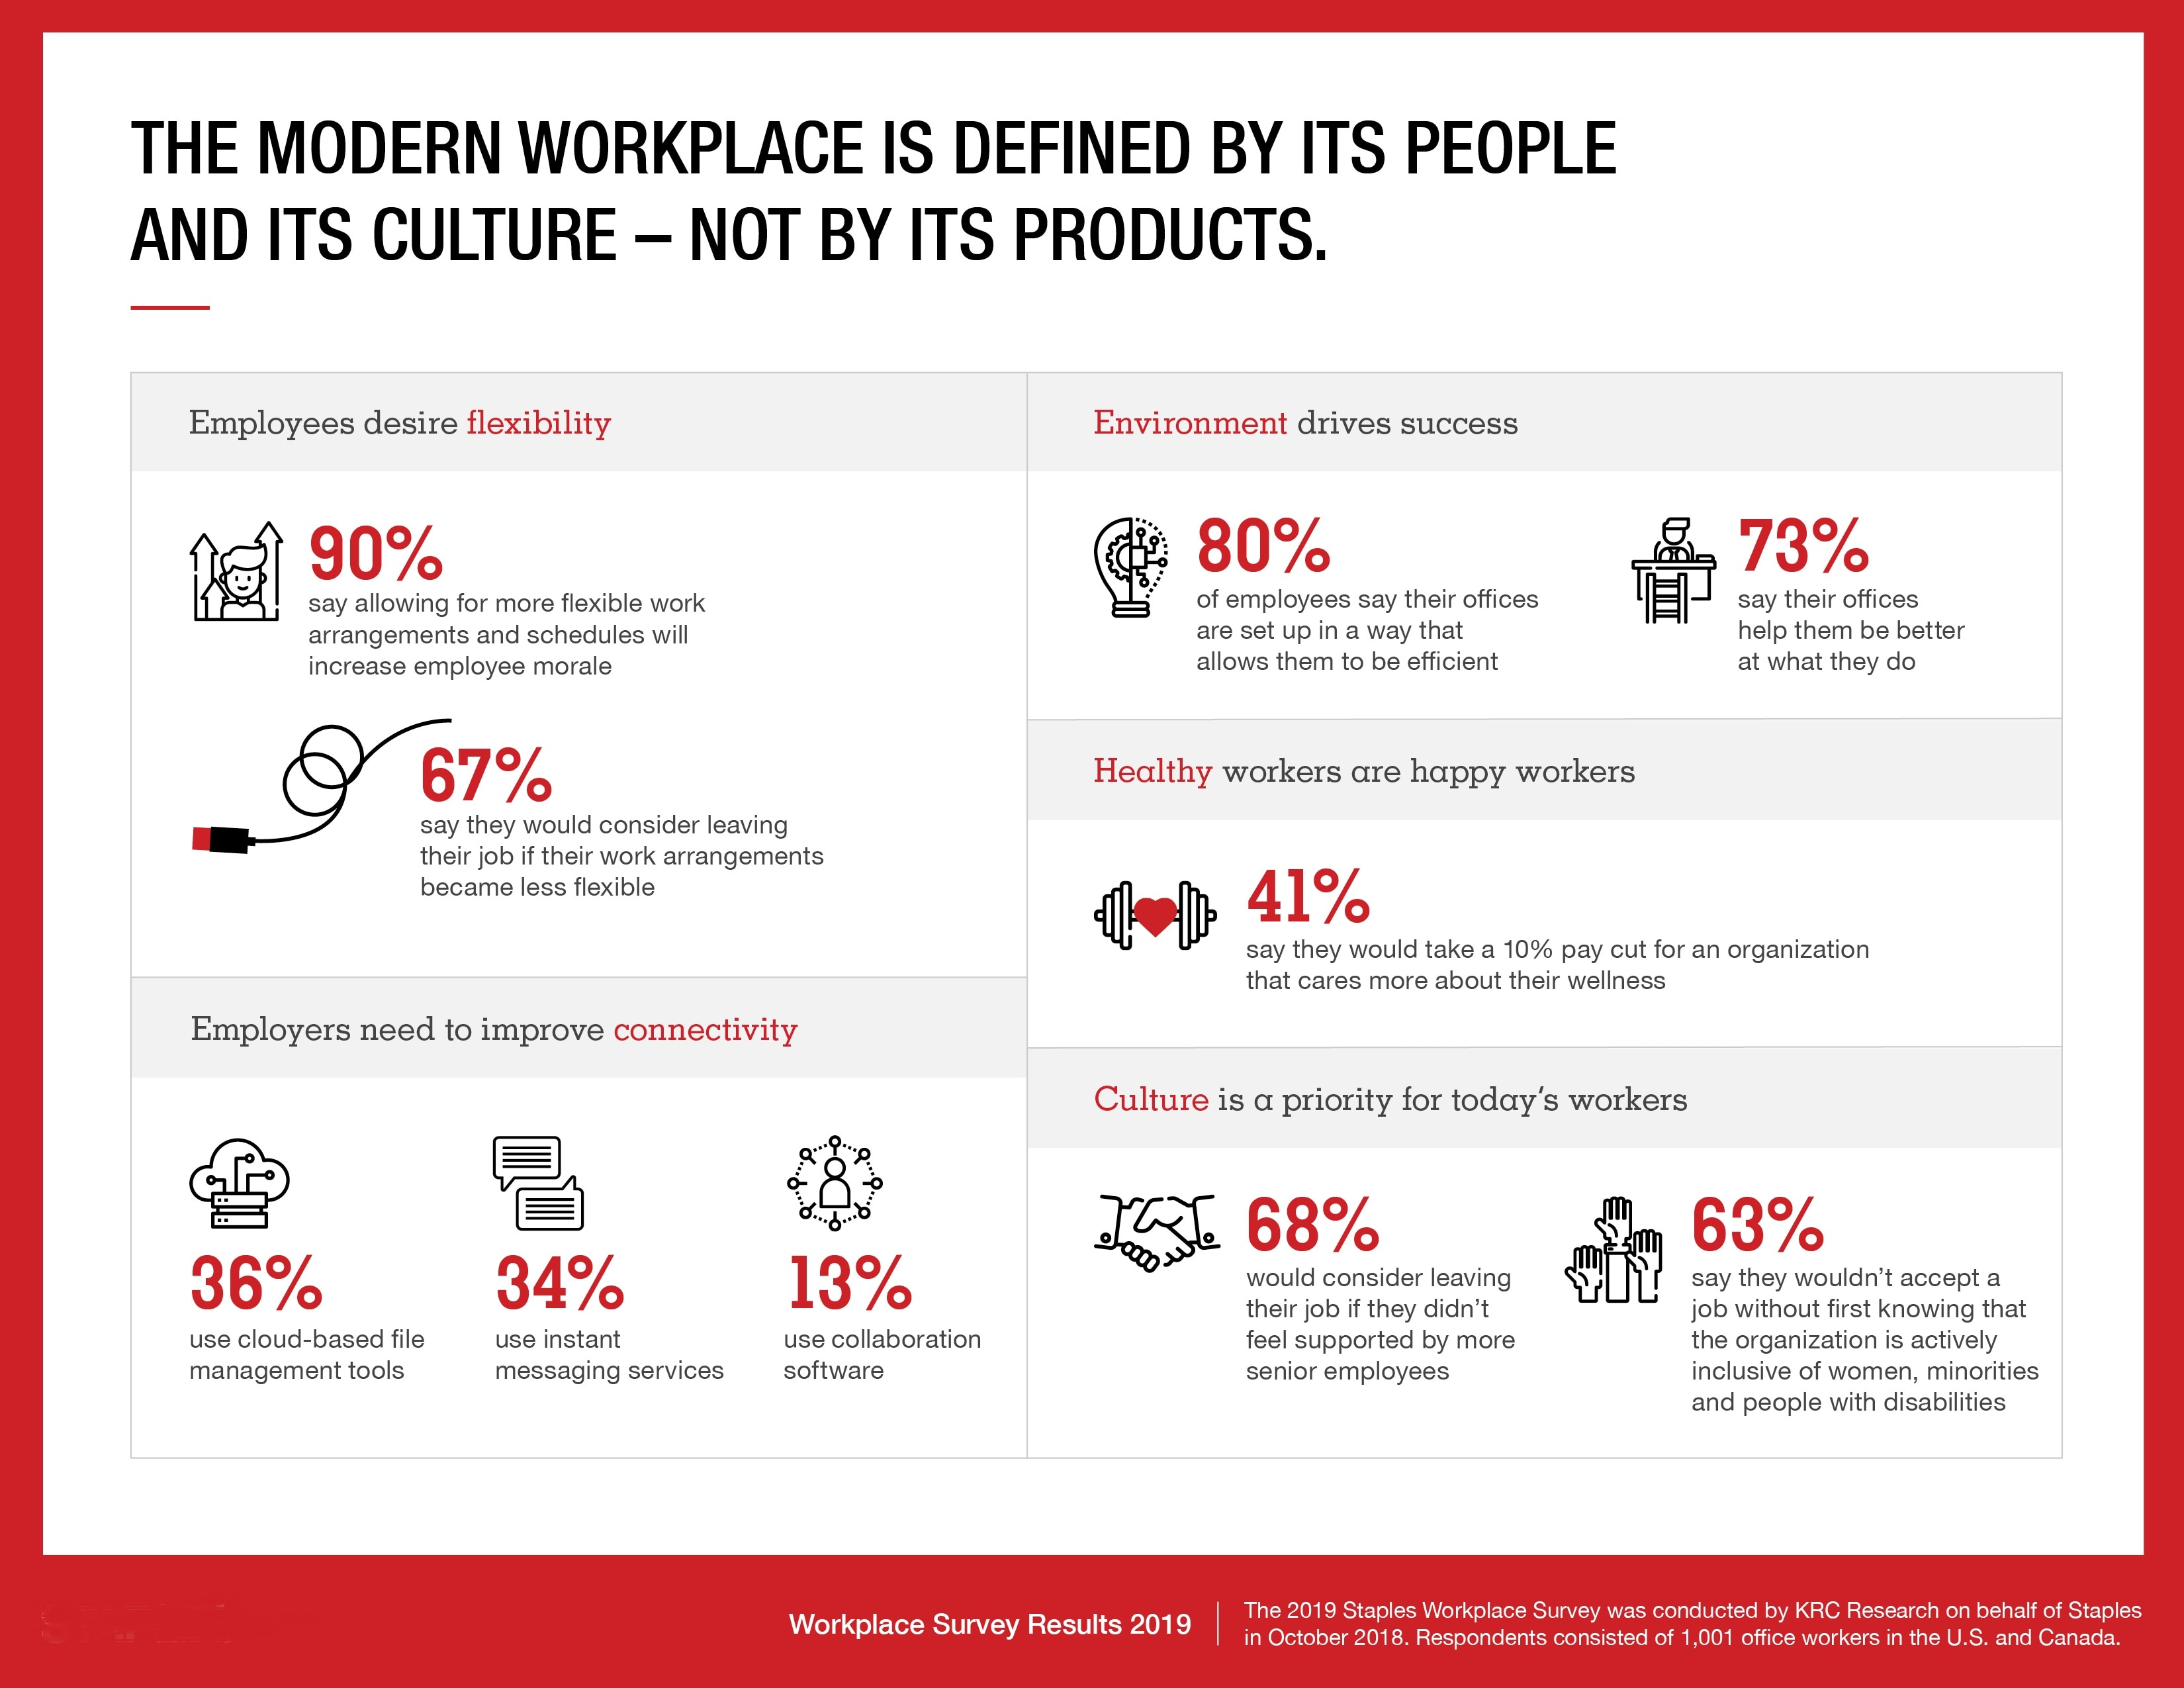 What Defines the Modern Workplace?